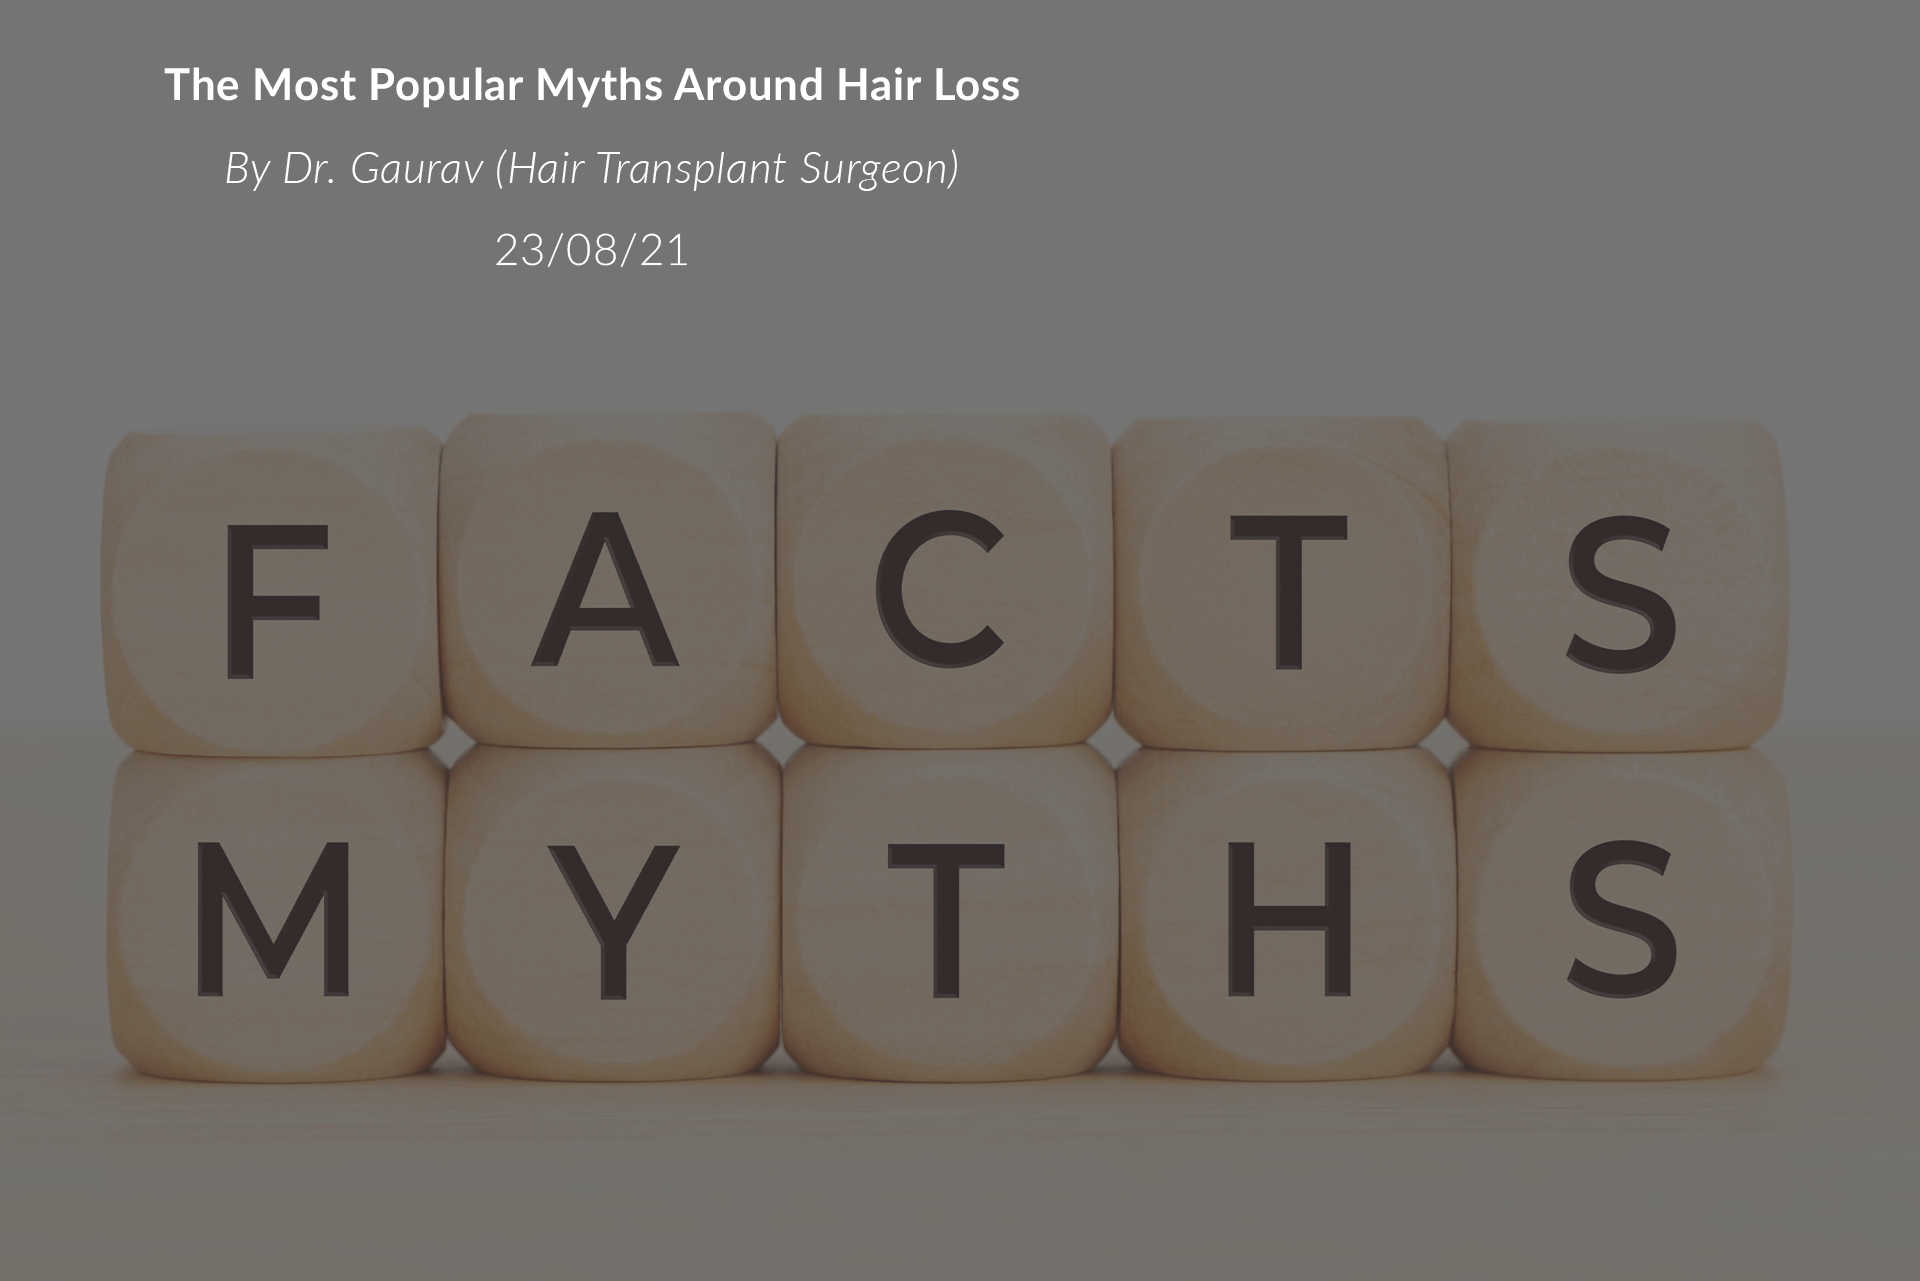 The Most Popular Myths Around Hair Loss